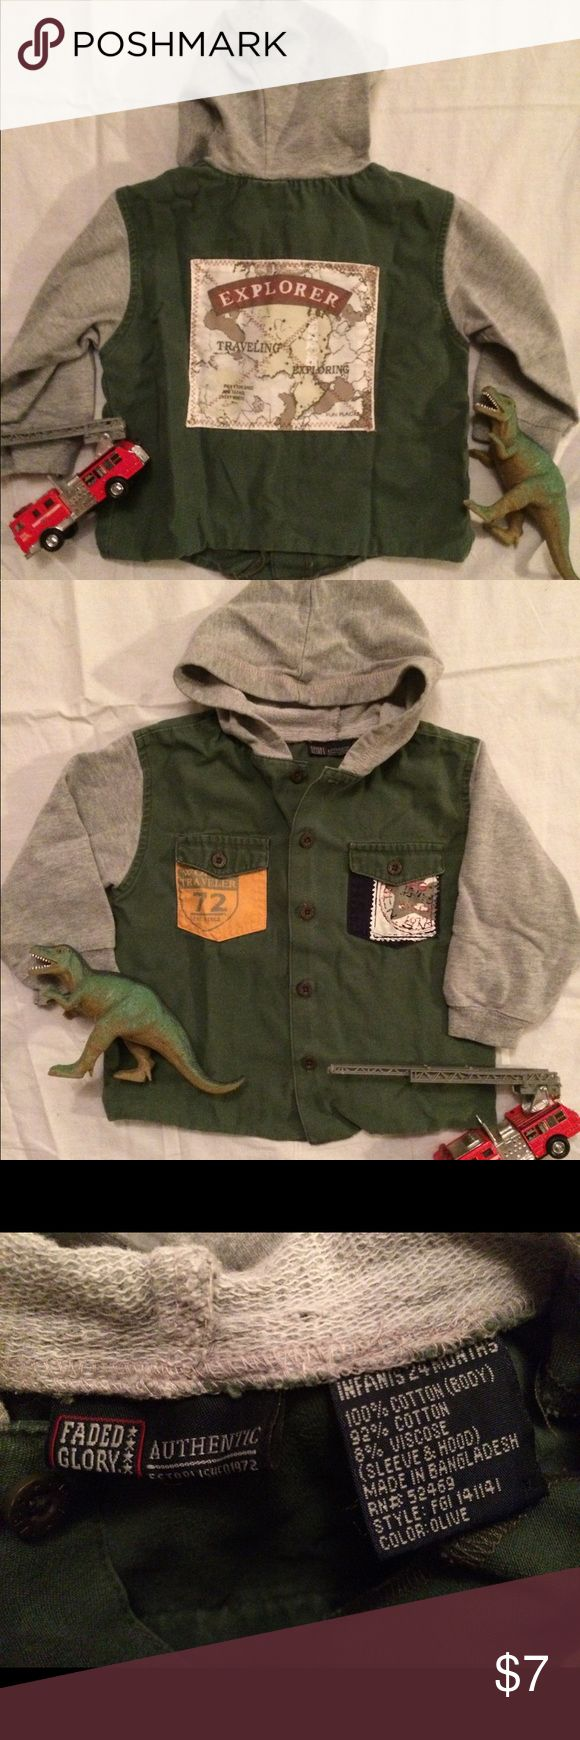 World Explorer jacket/ hoodie, 24mo 🍁Great for fall🍁 Cute little combo of a light jacket with hoodie characteristics. Olive green khaki/ canvas body with soft, grey, French terry sleeves & hood. Decorated with travel themed patches. Button up front & 2 flap pockets.EUC- no stains or rips. Pet friendly home, but stored in pet free room. 10% off bundles of 2 items, 15% off, or special offer, on 3 or more. (Toys for staging only- not mine to sell) Faded Glory Jackets & Coats